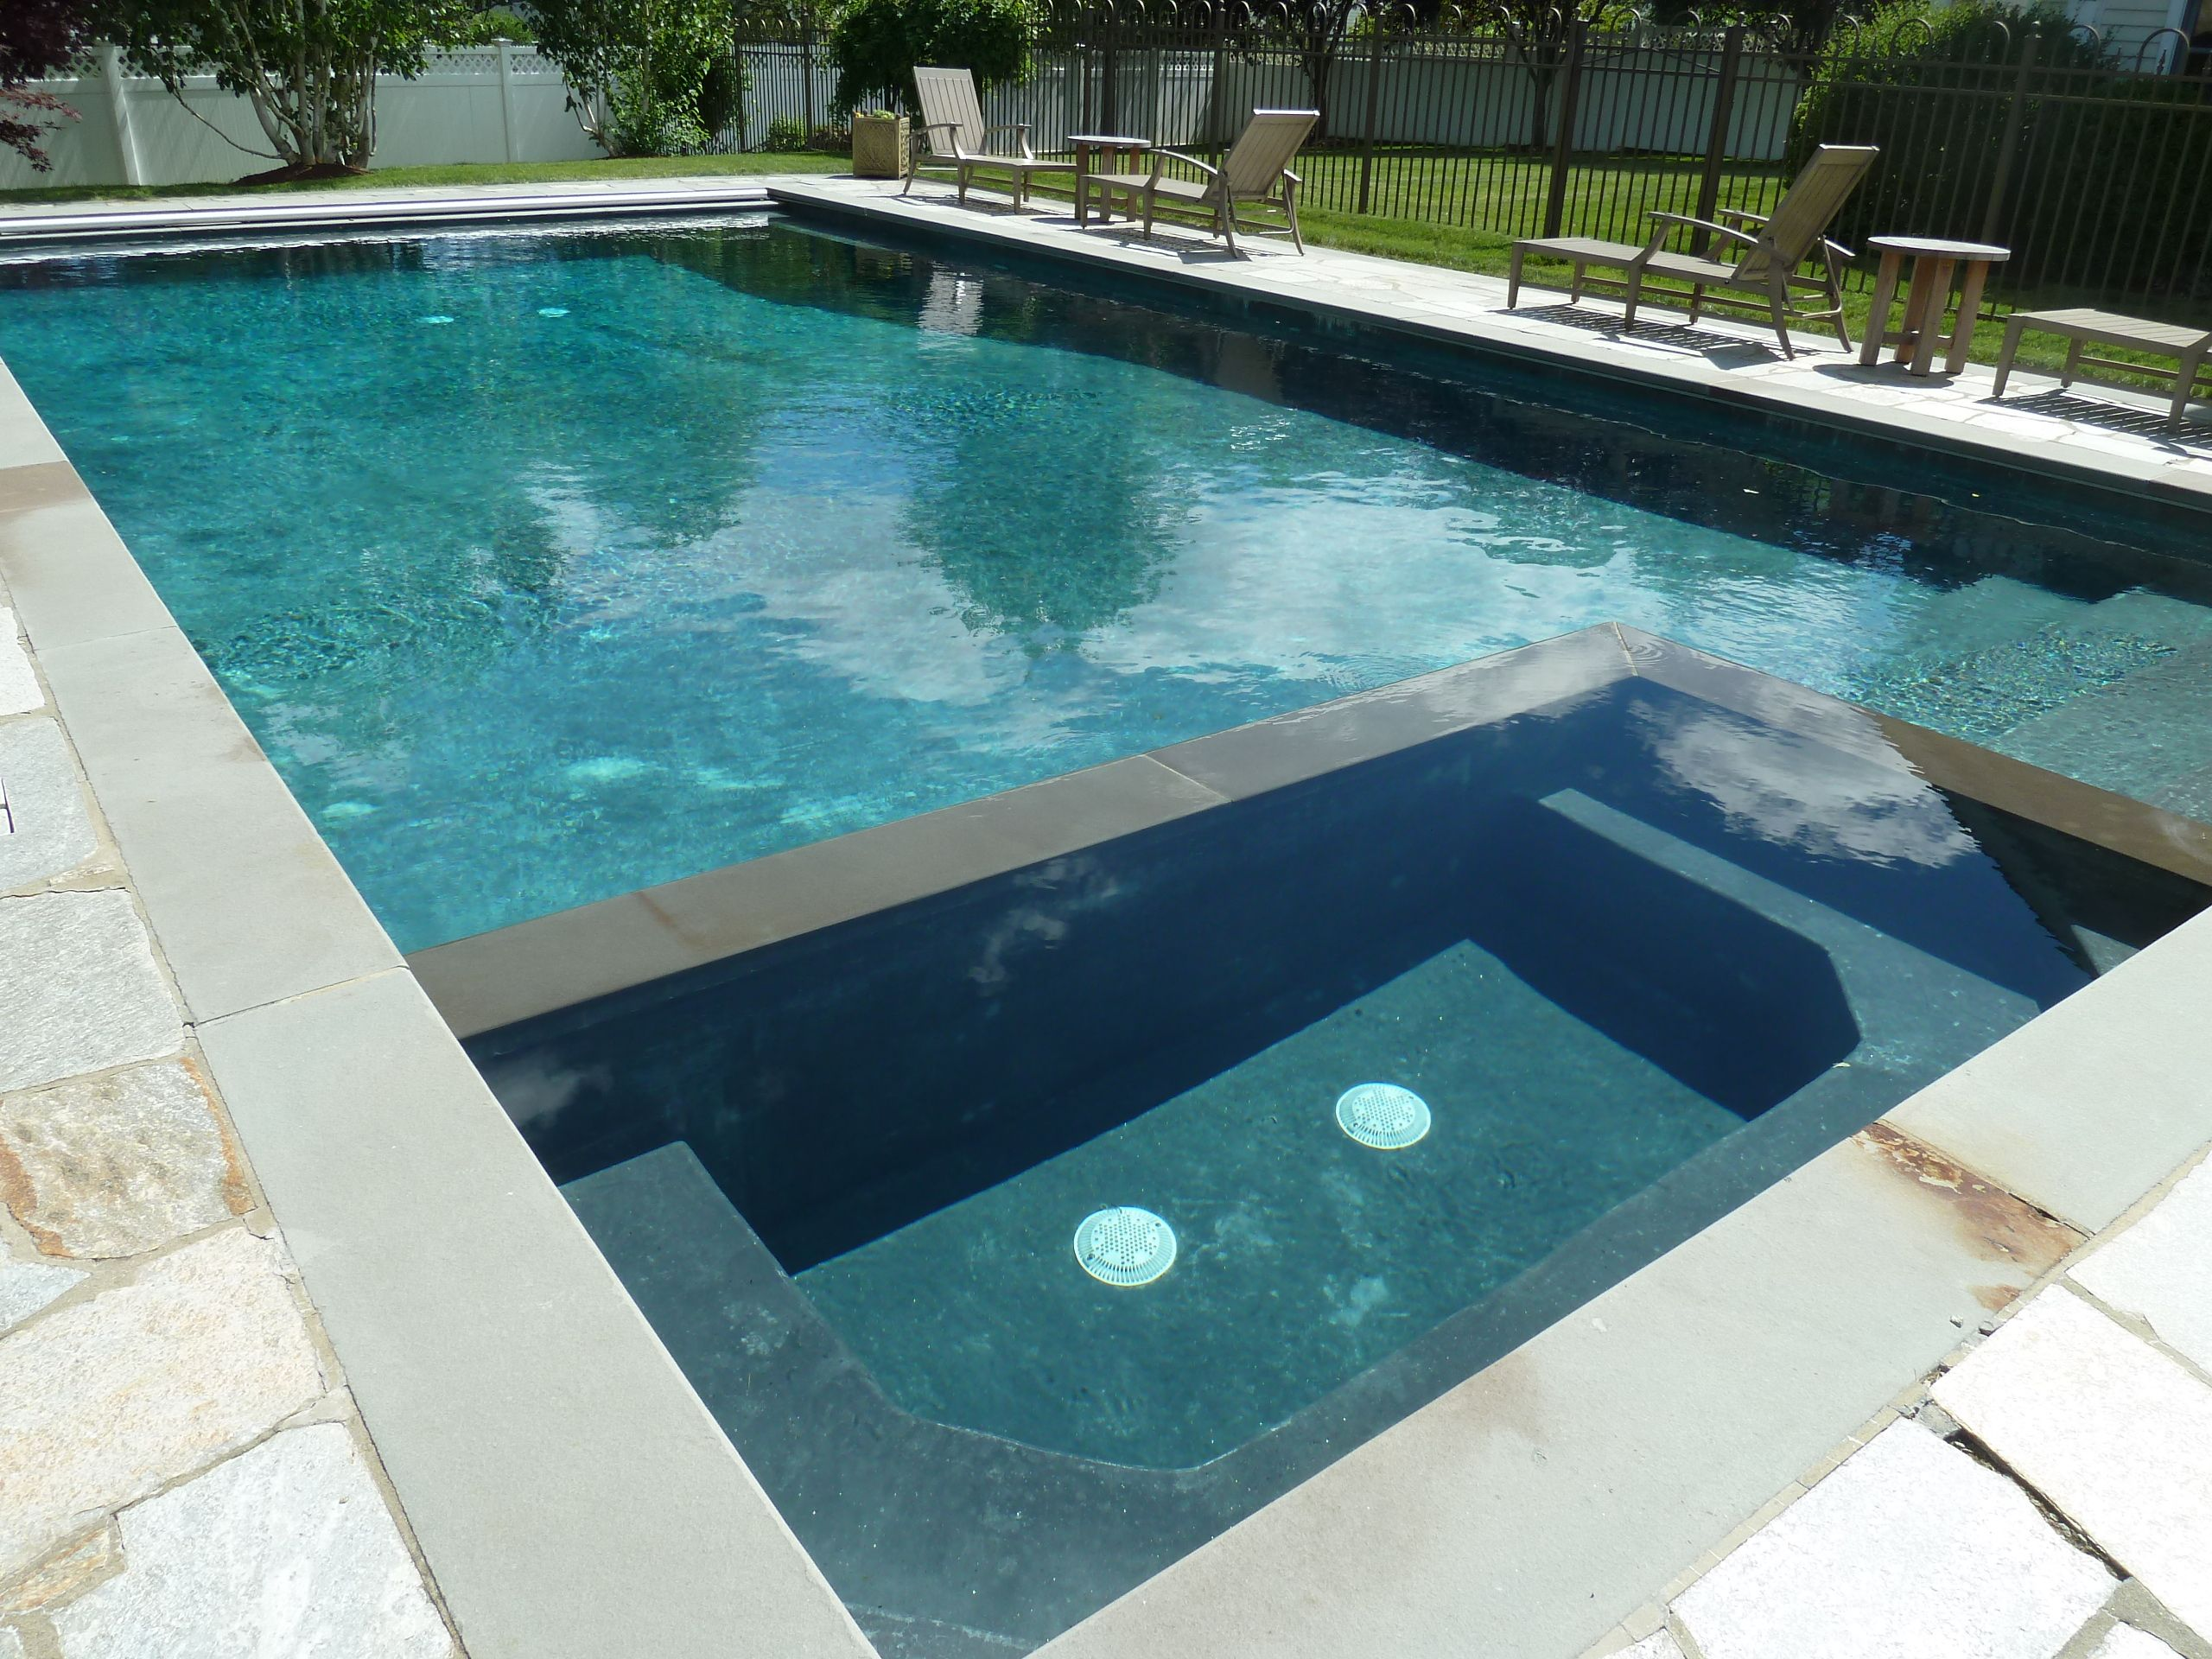 Jacuzzi Pool Covers Rectangle Gunite In Ground Swimming Pool And Spa With